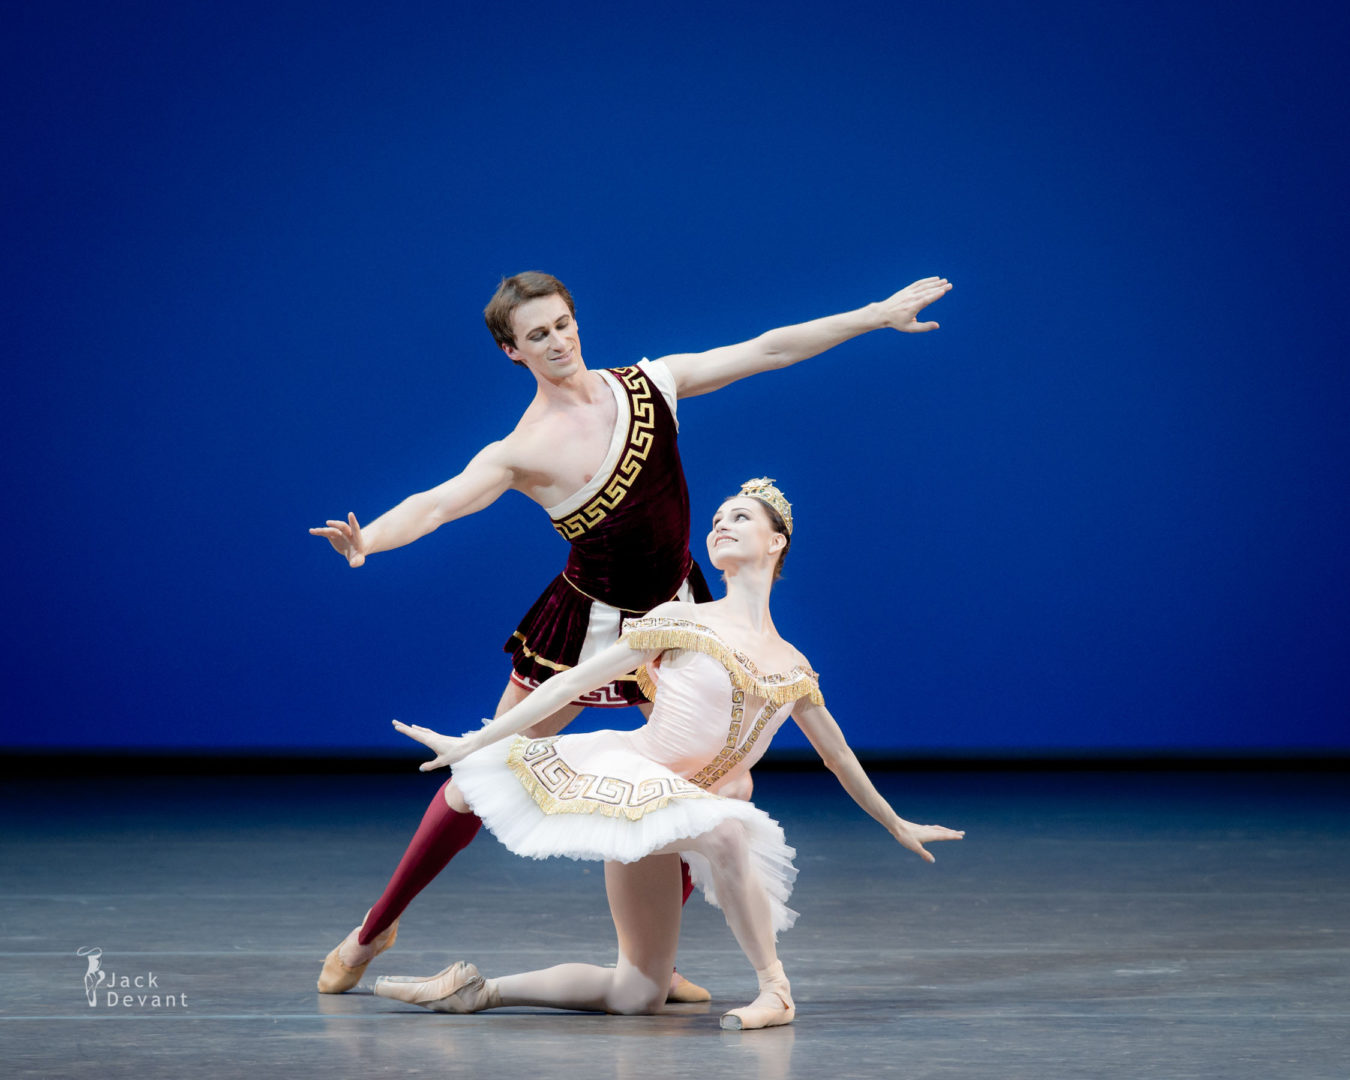 Benois de la Danse Oksana Skorik (Rus. Оксана Скорик) and Philipp Stepin (Rus. Филипп Стёпин) in Sylvia, music by Léo Delibes, choreography by Frederick Ashton